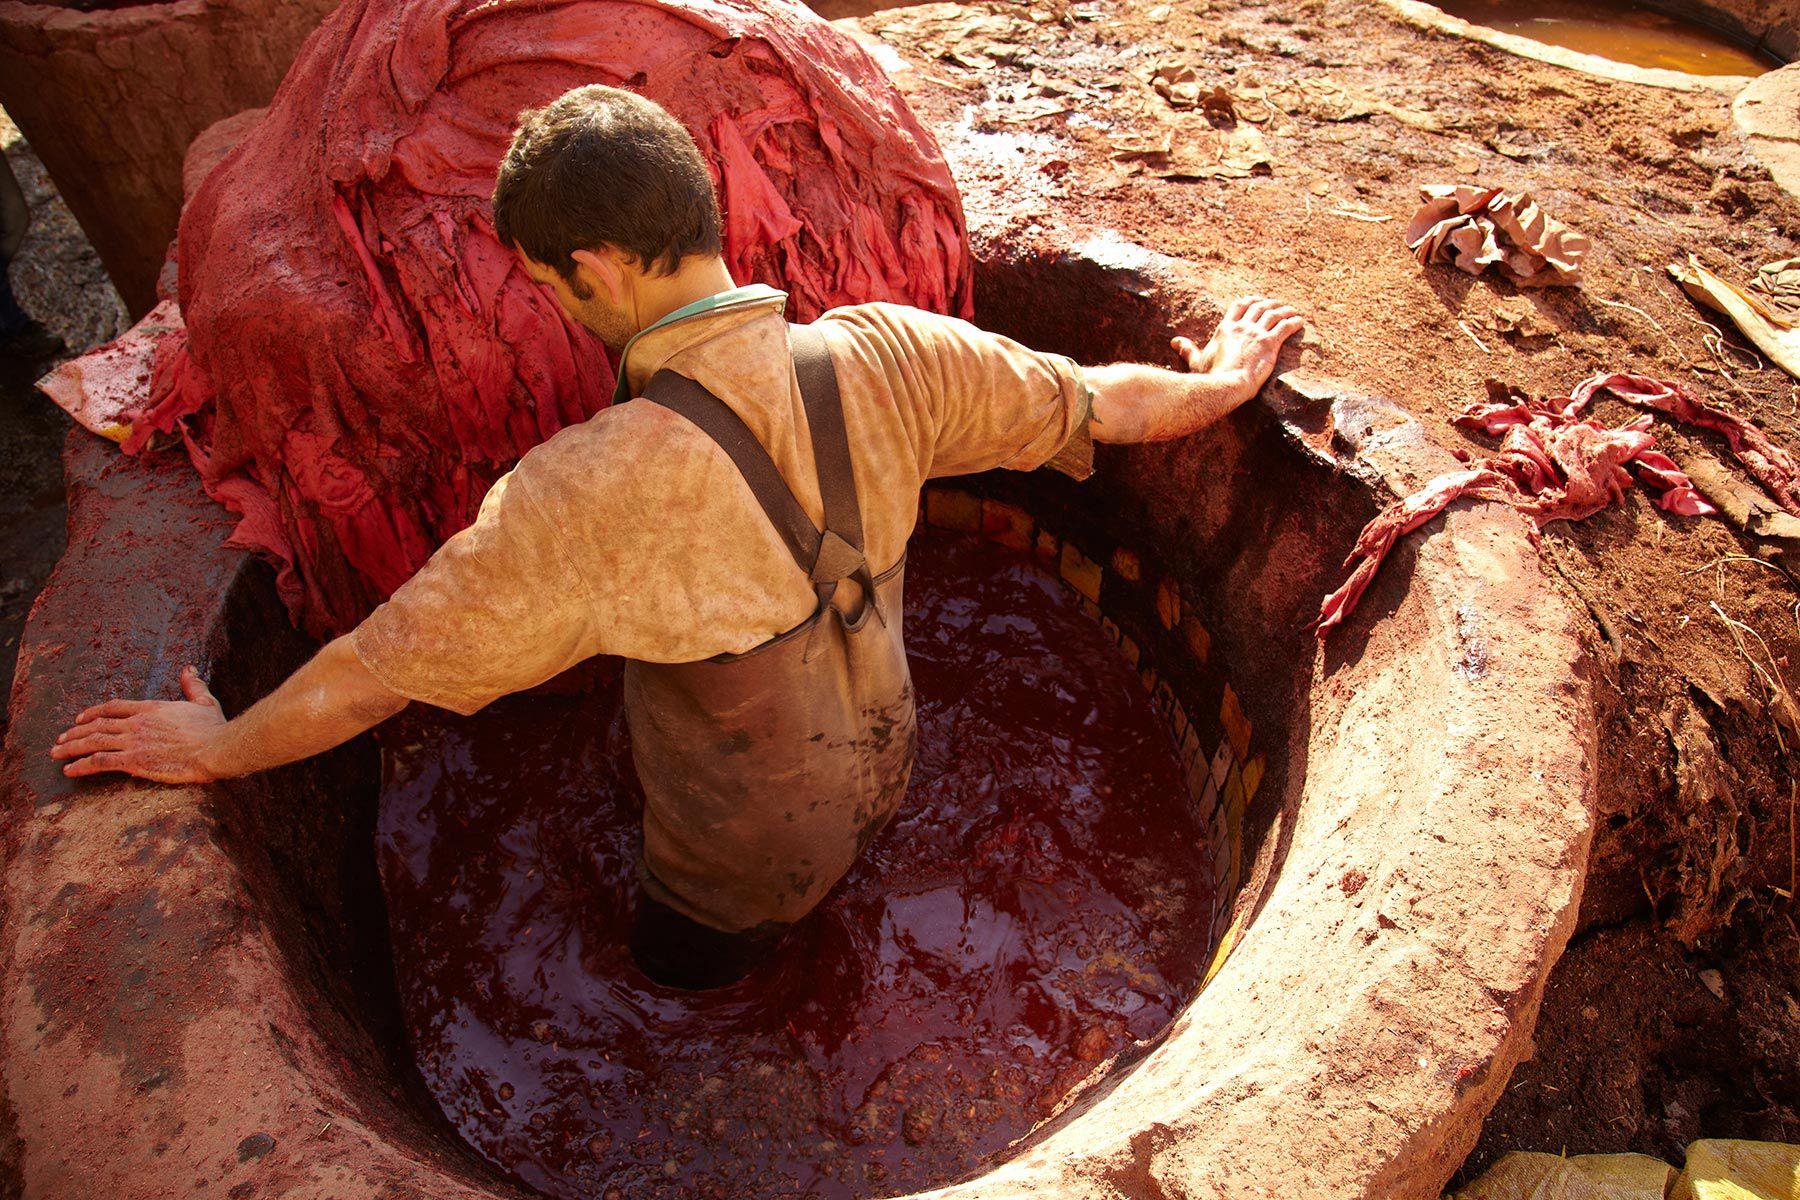 A worker at a tannery in Fez, Morocco